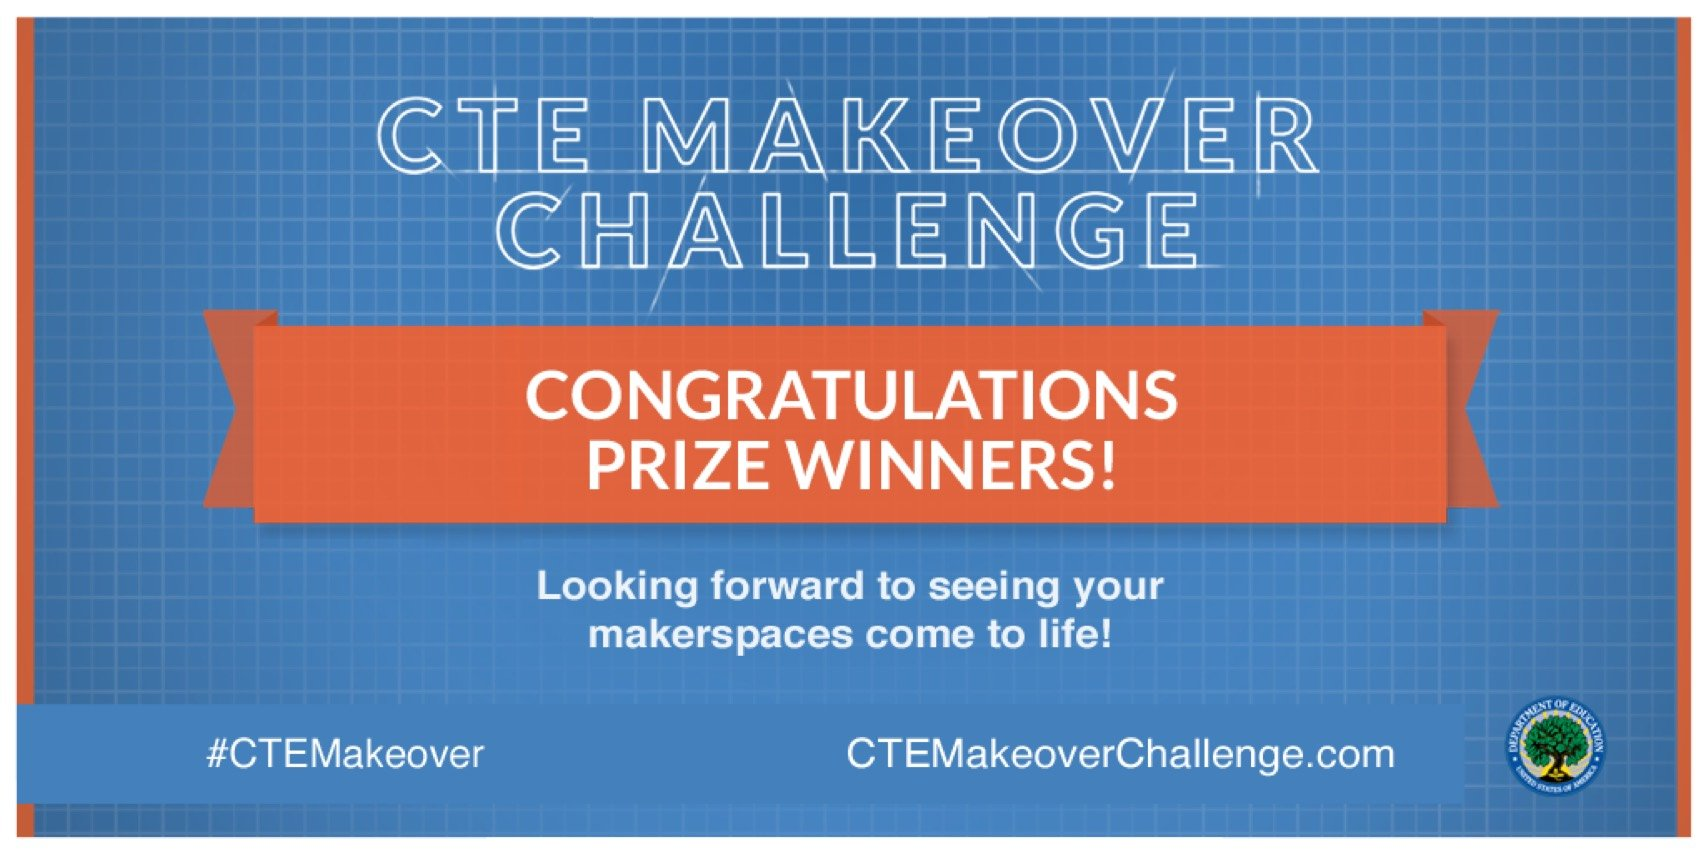 Cte Makeover Prize Winner Announcement Twitter 2